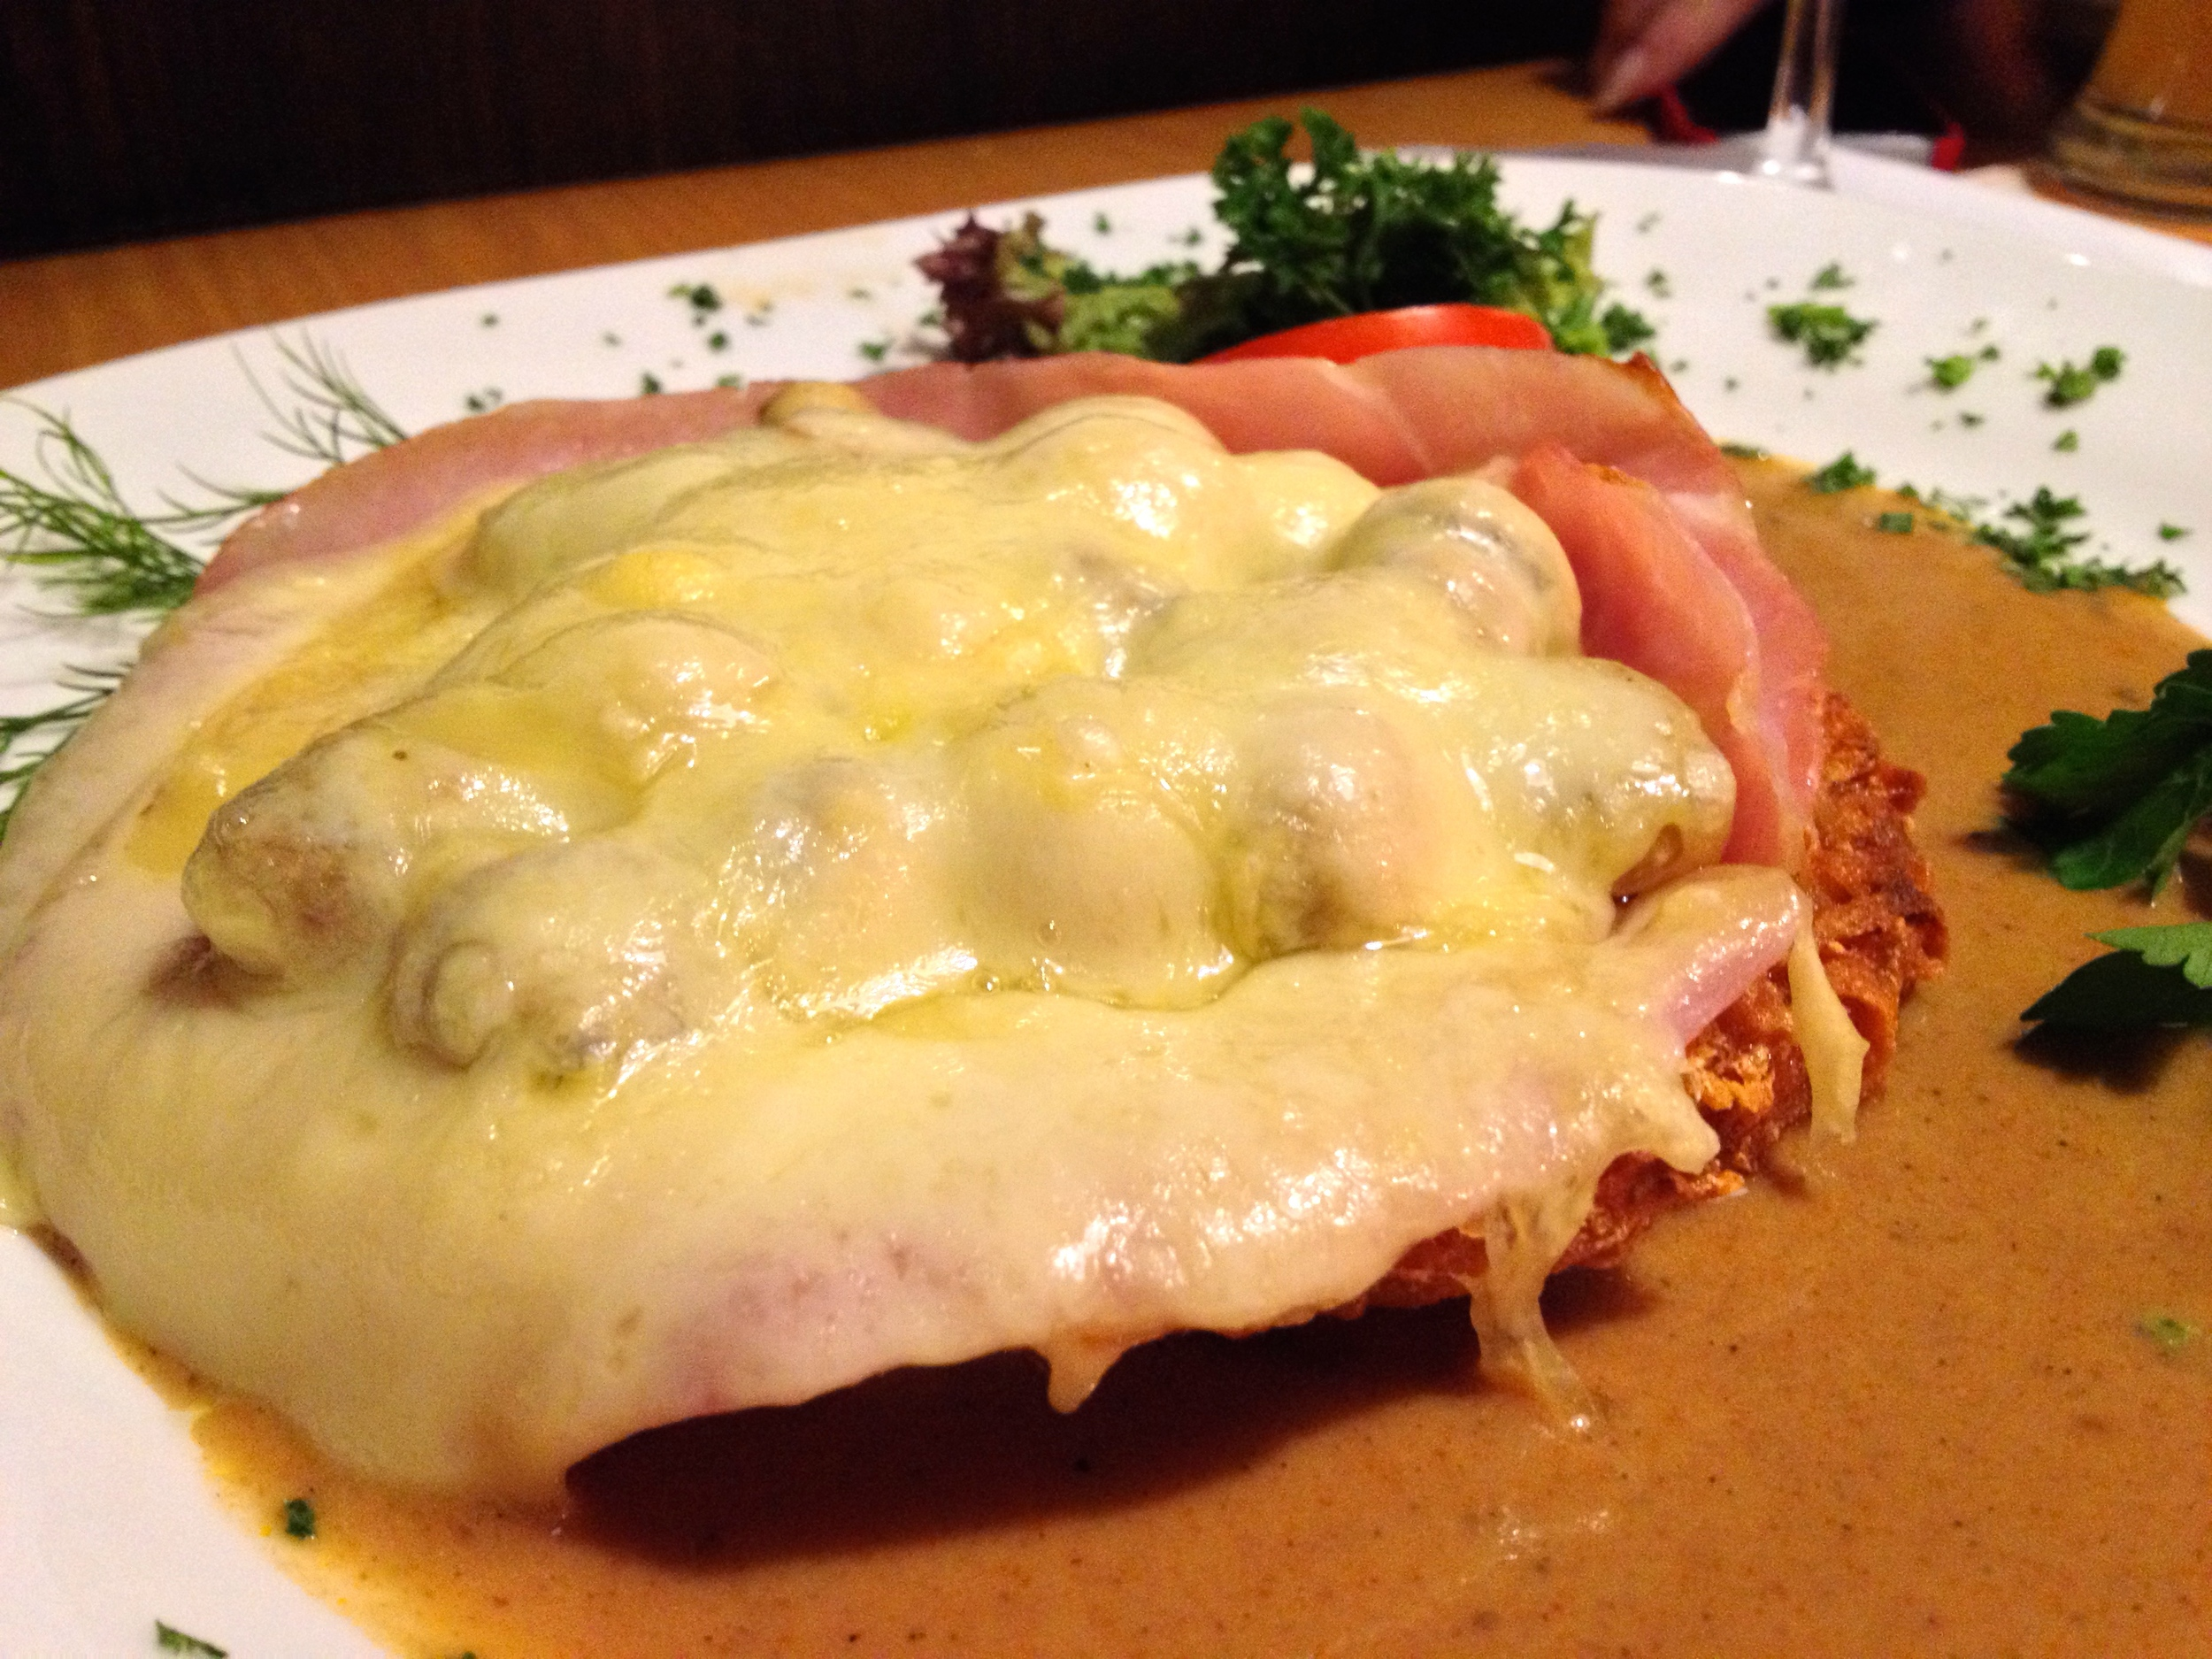 Matt's potato pancake or  Rösti topped with hame, mushrooms, and cheese and smothered in sauce